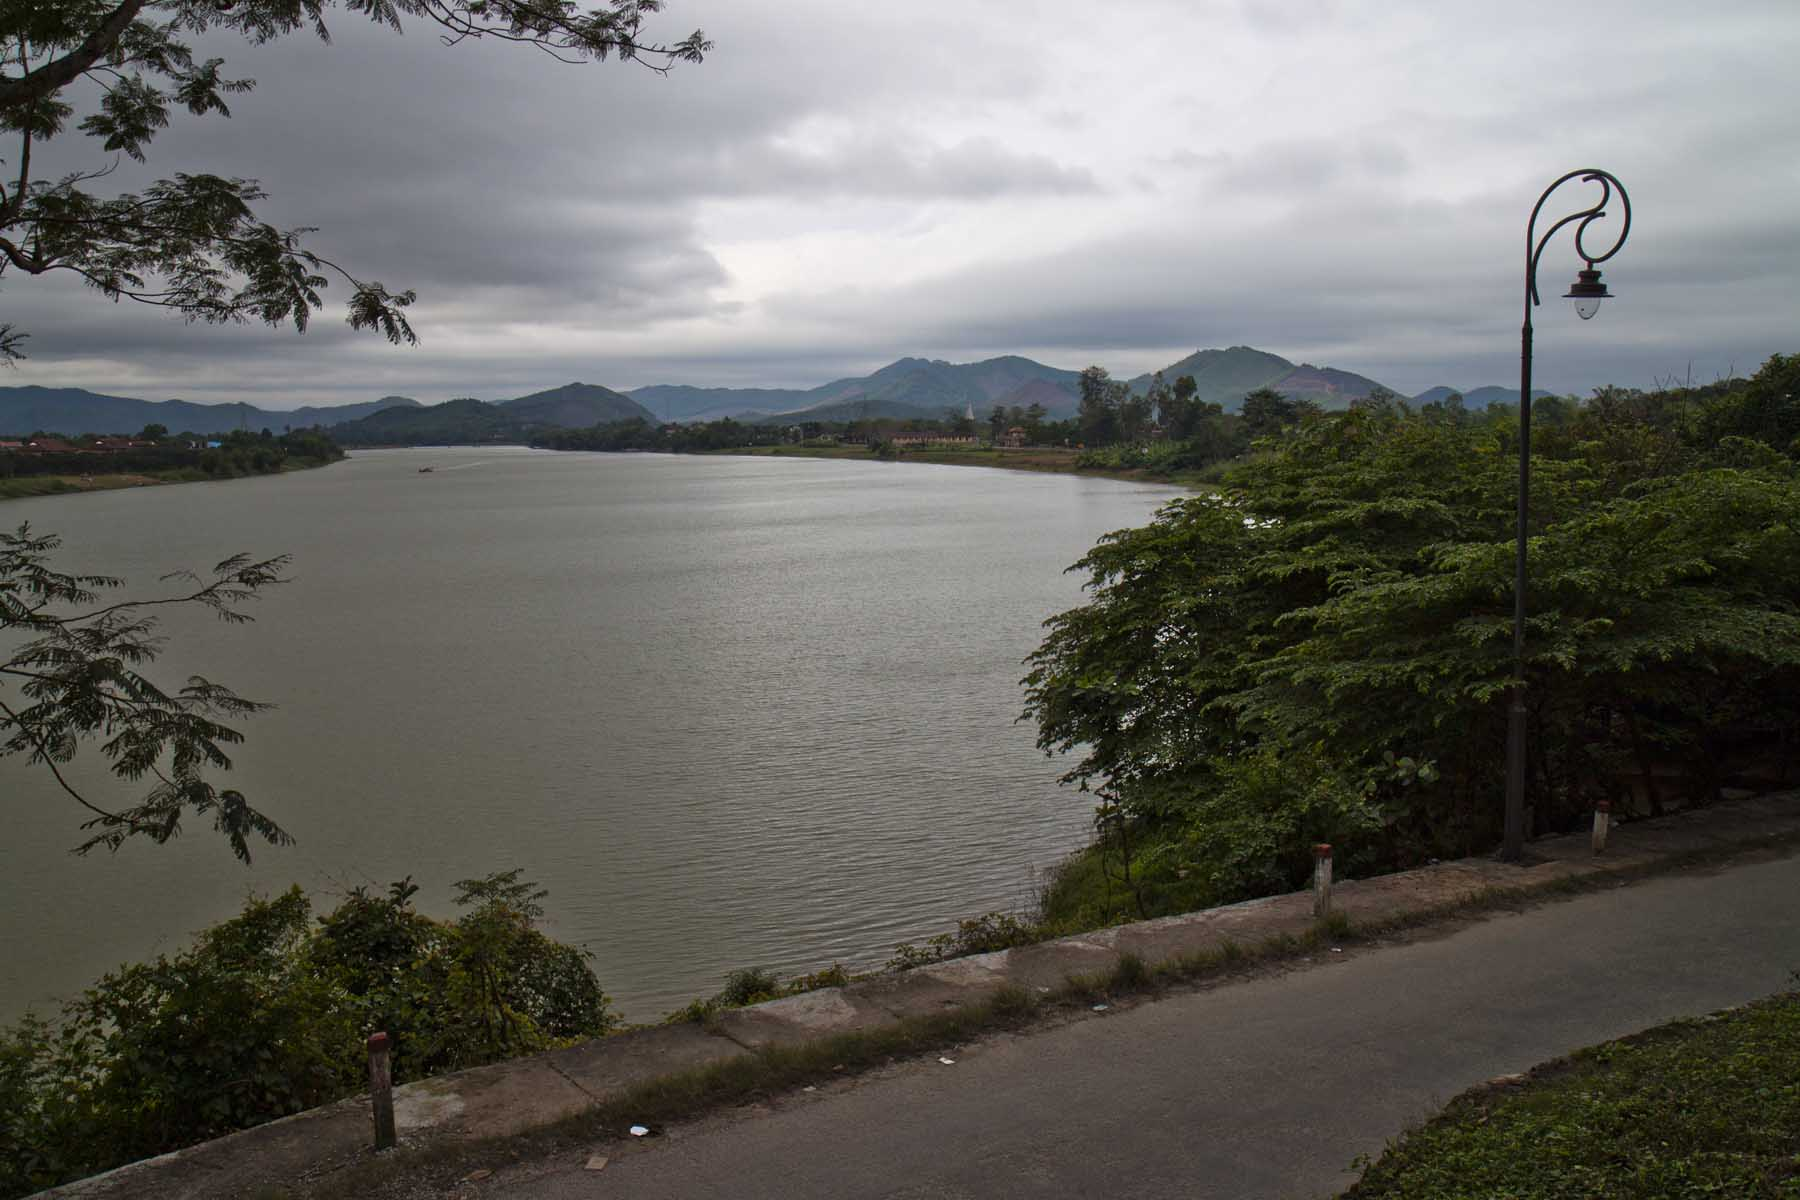 View of the Perfume River from the Thien Mu Pagoda, Hue